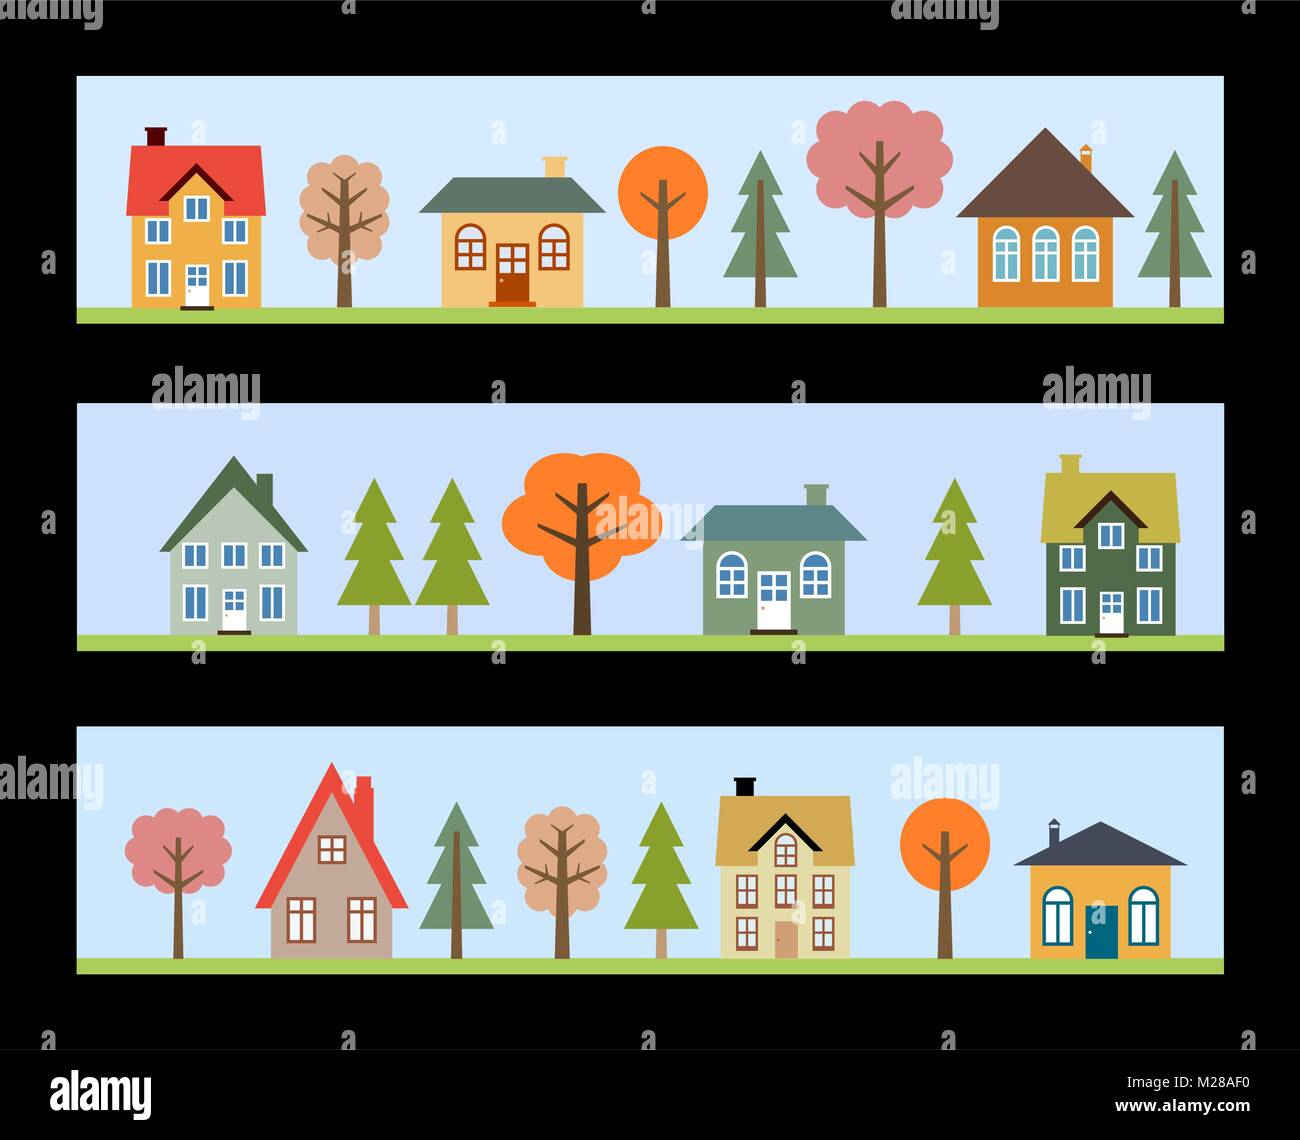 Residential neighborhoods - three banners with vector small towns. - Stock Vector